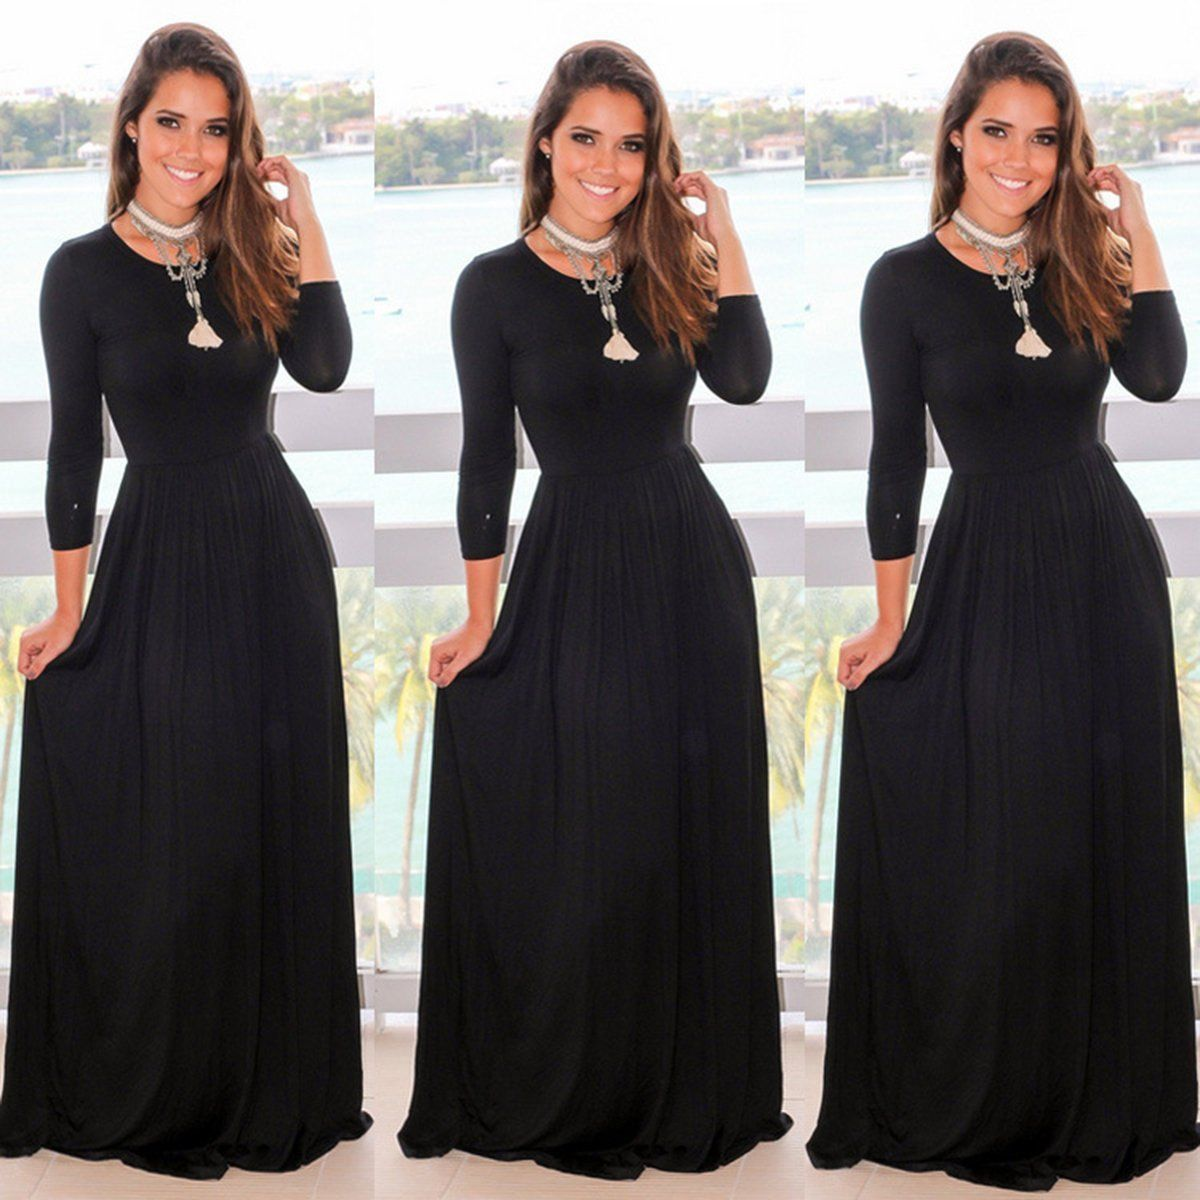 Womenus casual long maxi dress long sleeve evening party cocktail